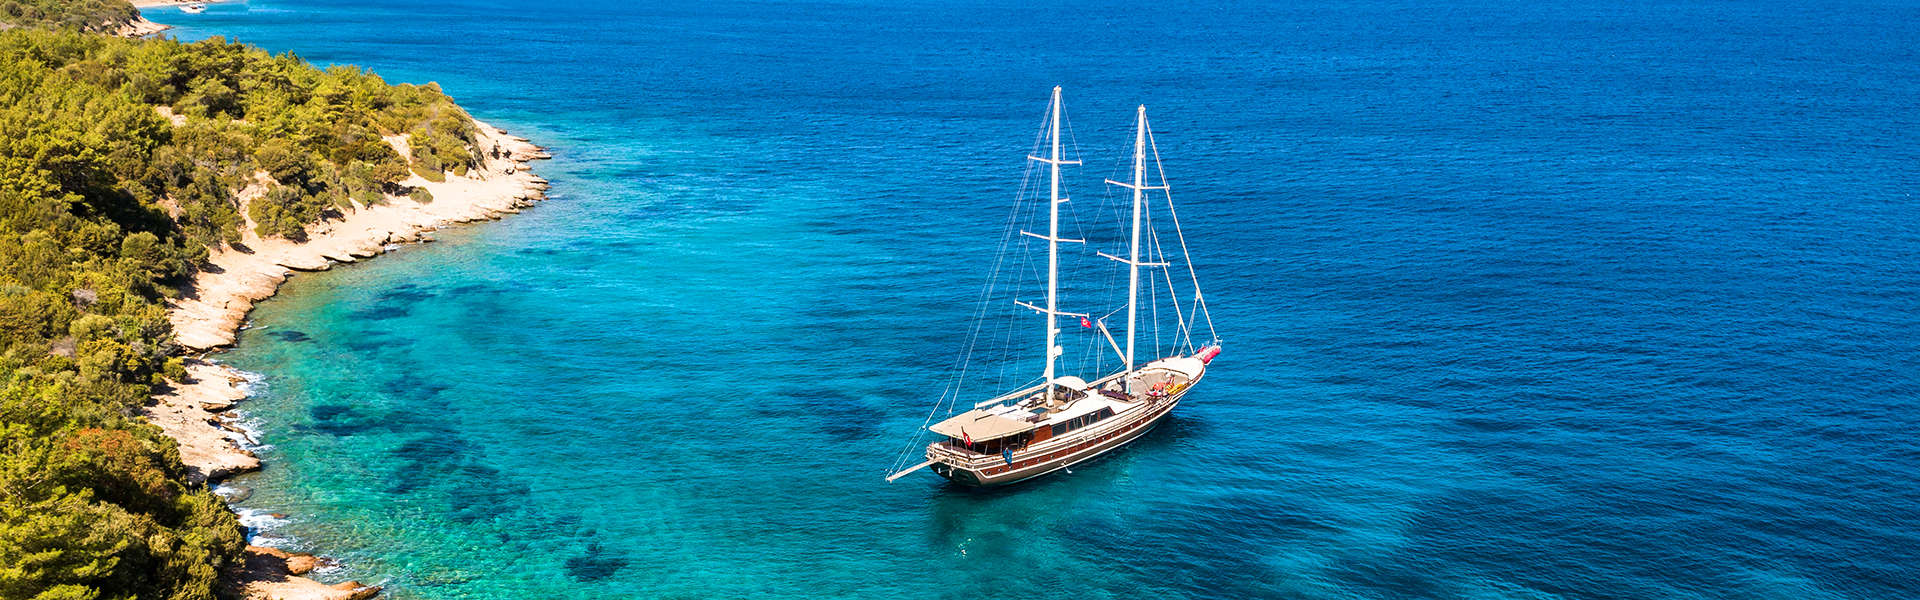 LUXURY BLUE CRUISE IN TURKEY - Header image